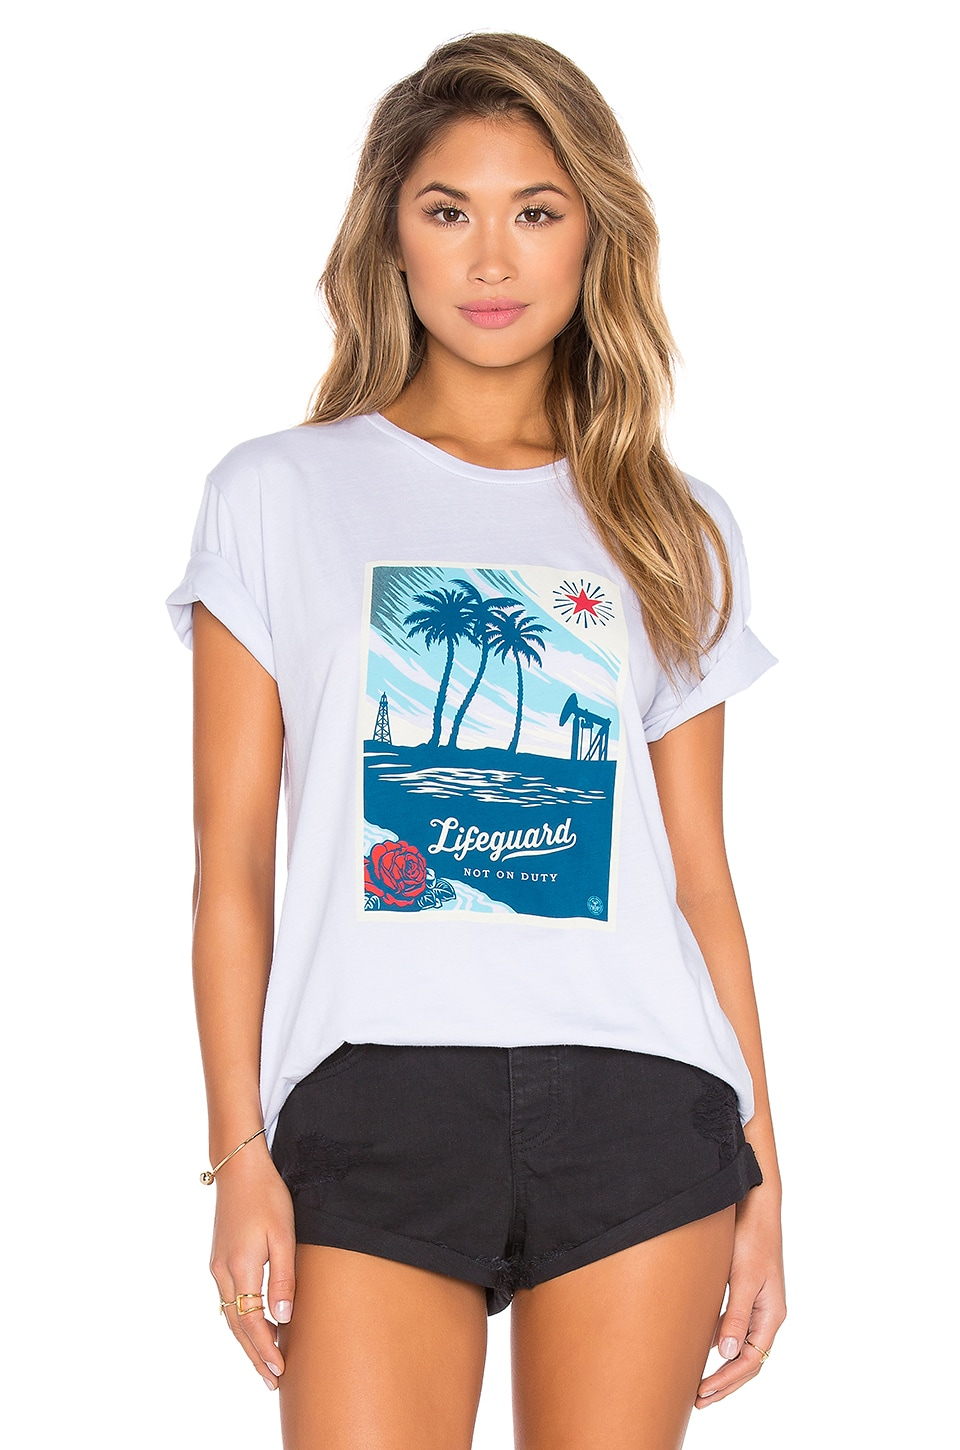 Obey Lifeguard Not On Duty Classic Tee in Light Blue